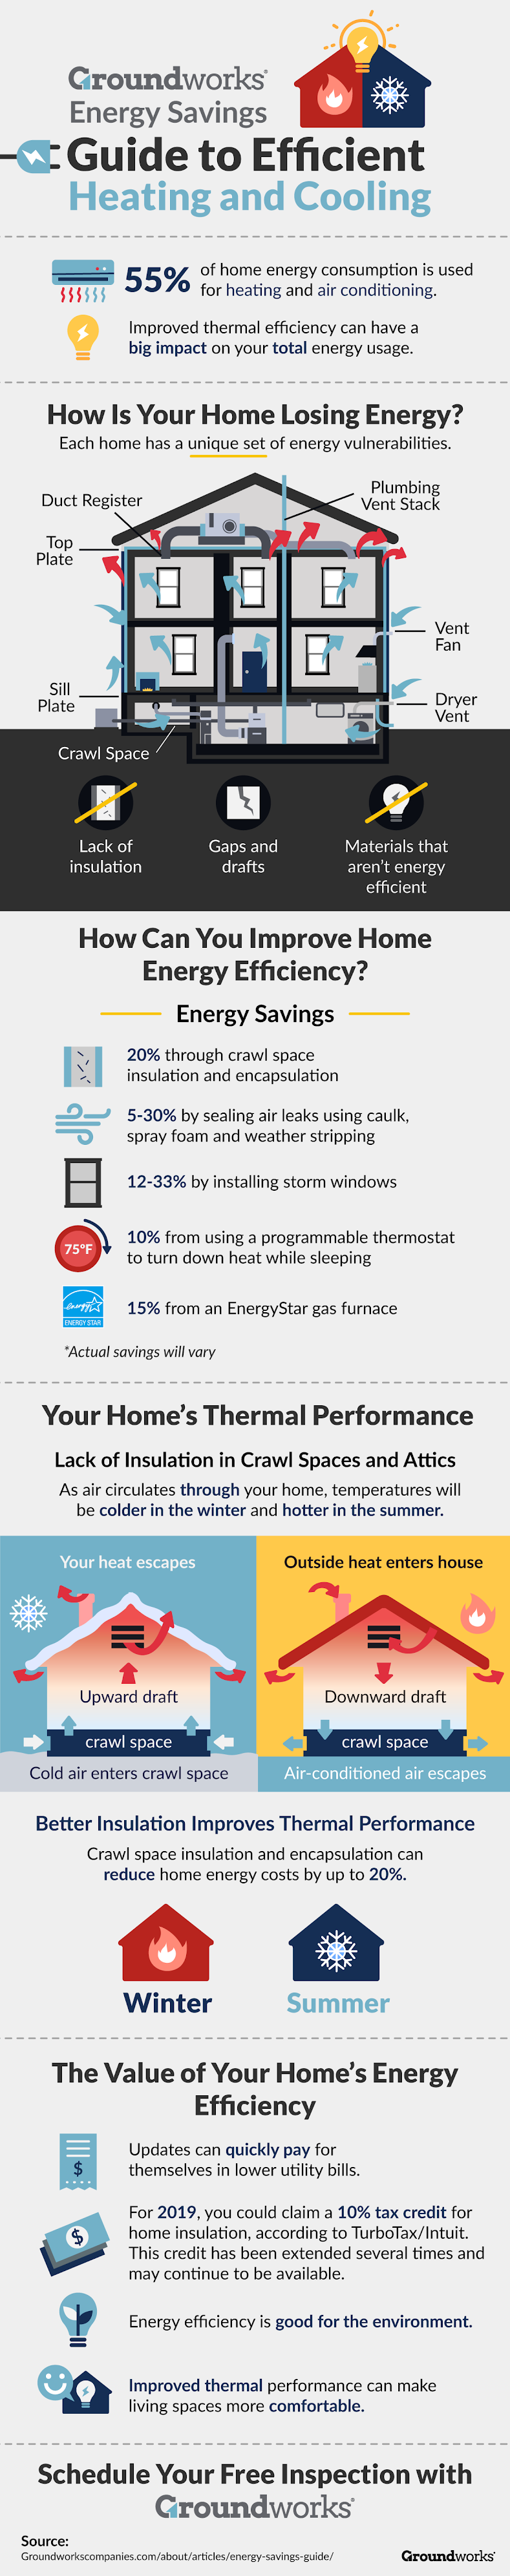 Energy Savings Tips for Homeowners to Reduce Their Heating and Cooling Costs #infographic #Home & Garden #Energy Savings #Heating and Cooling Costs